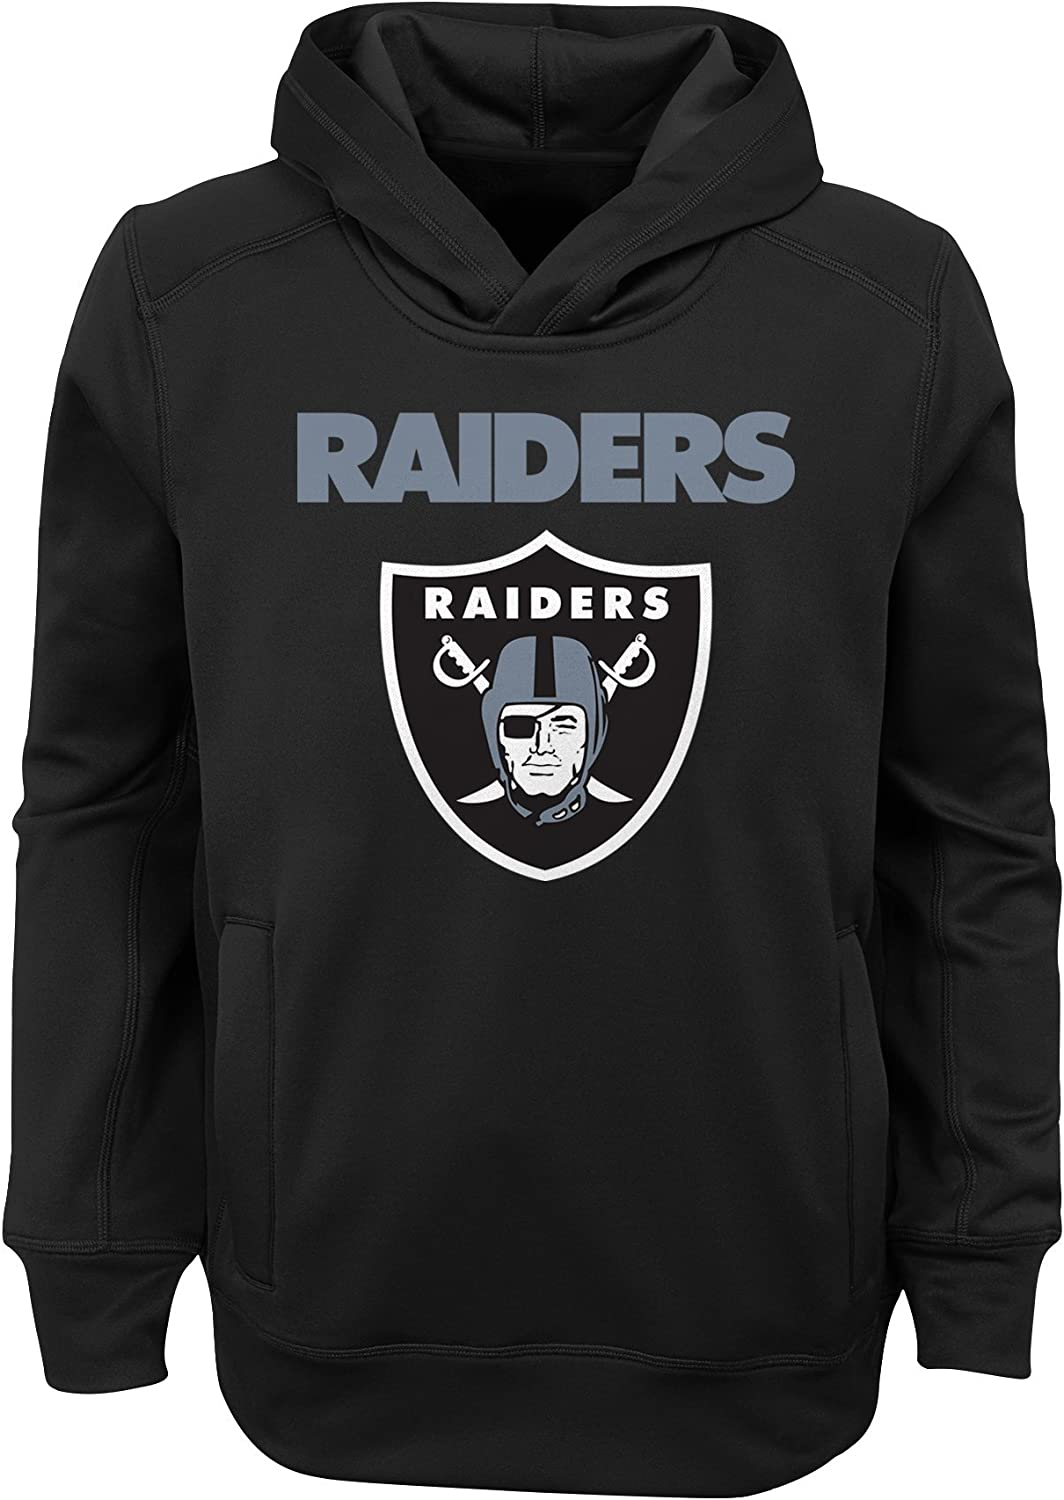 Outerstuff NFL boys Youth Boys goal Line Stand Performance Fleece Hoodie